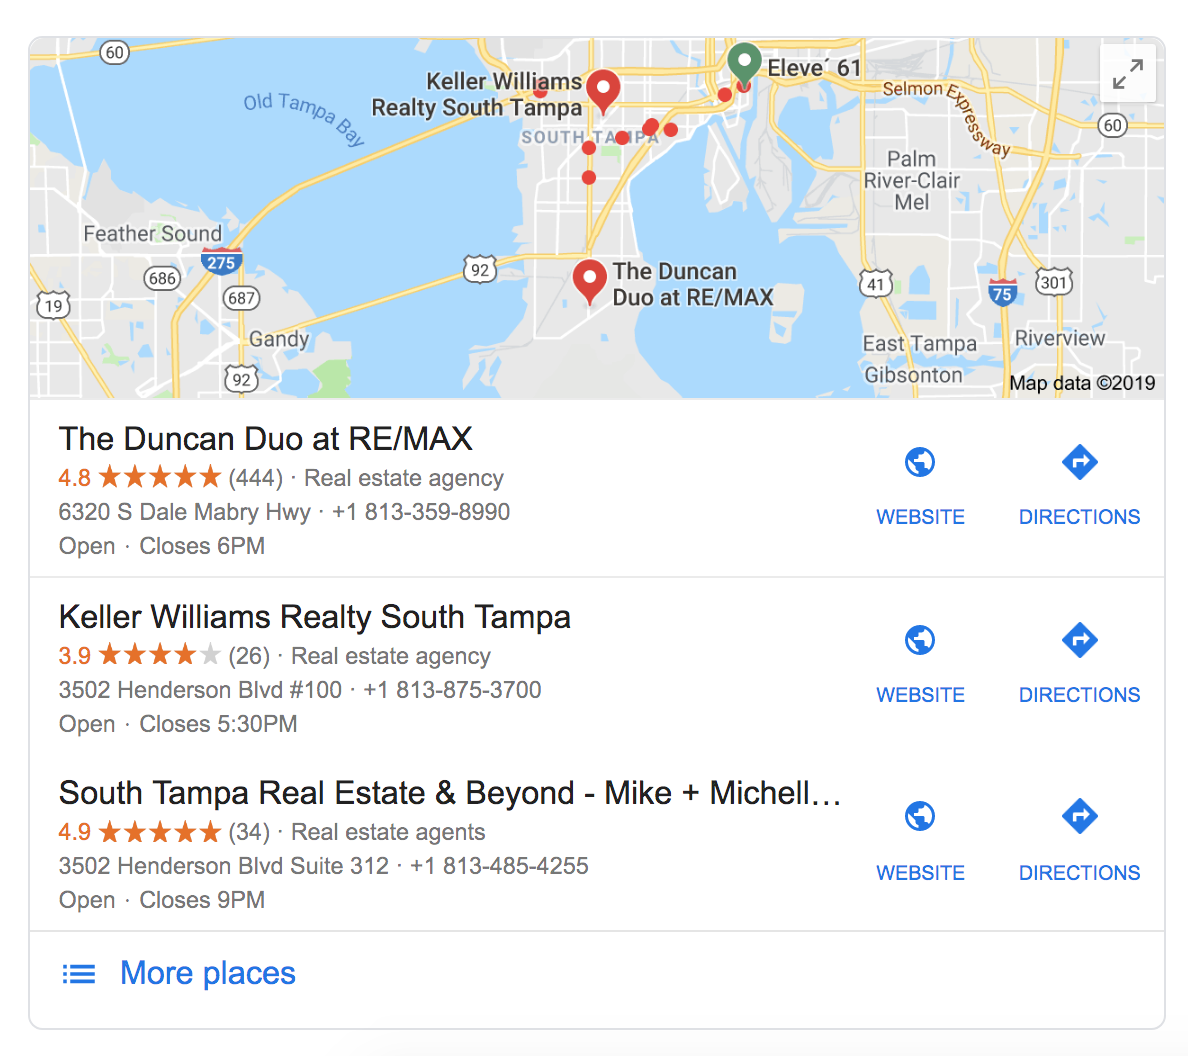 Google 3-Pack for Real Estate   Marketing Strategies for Real Estate Agents